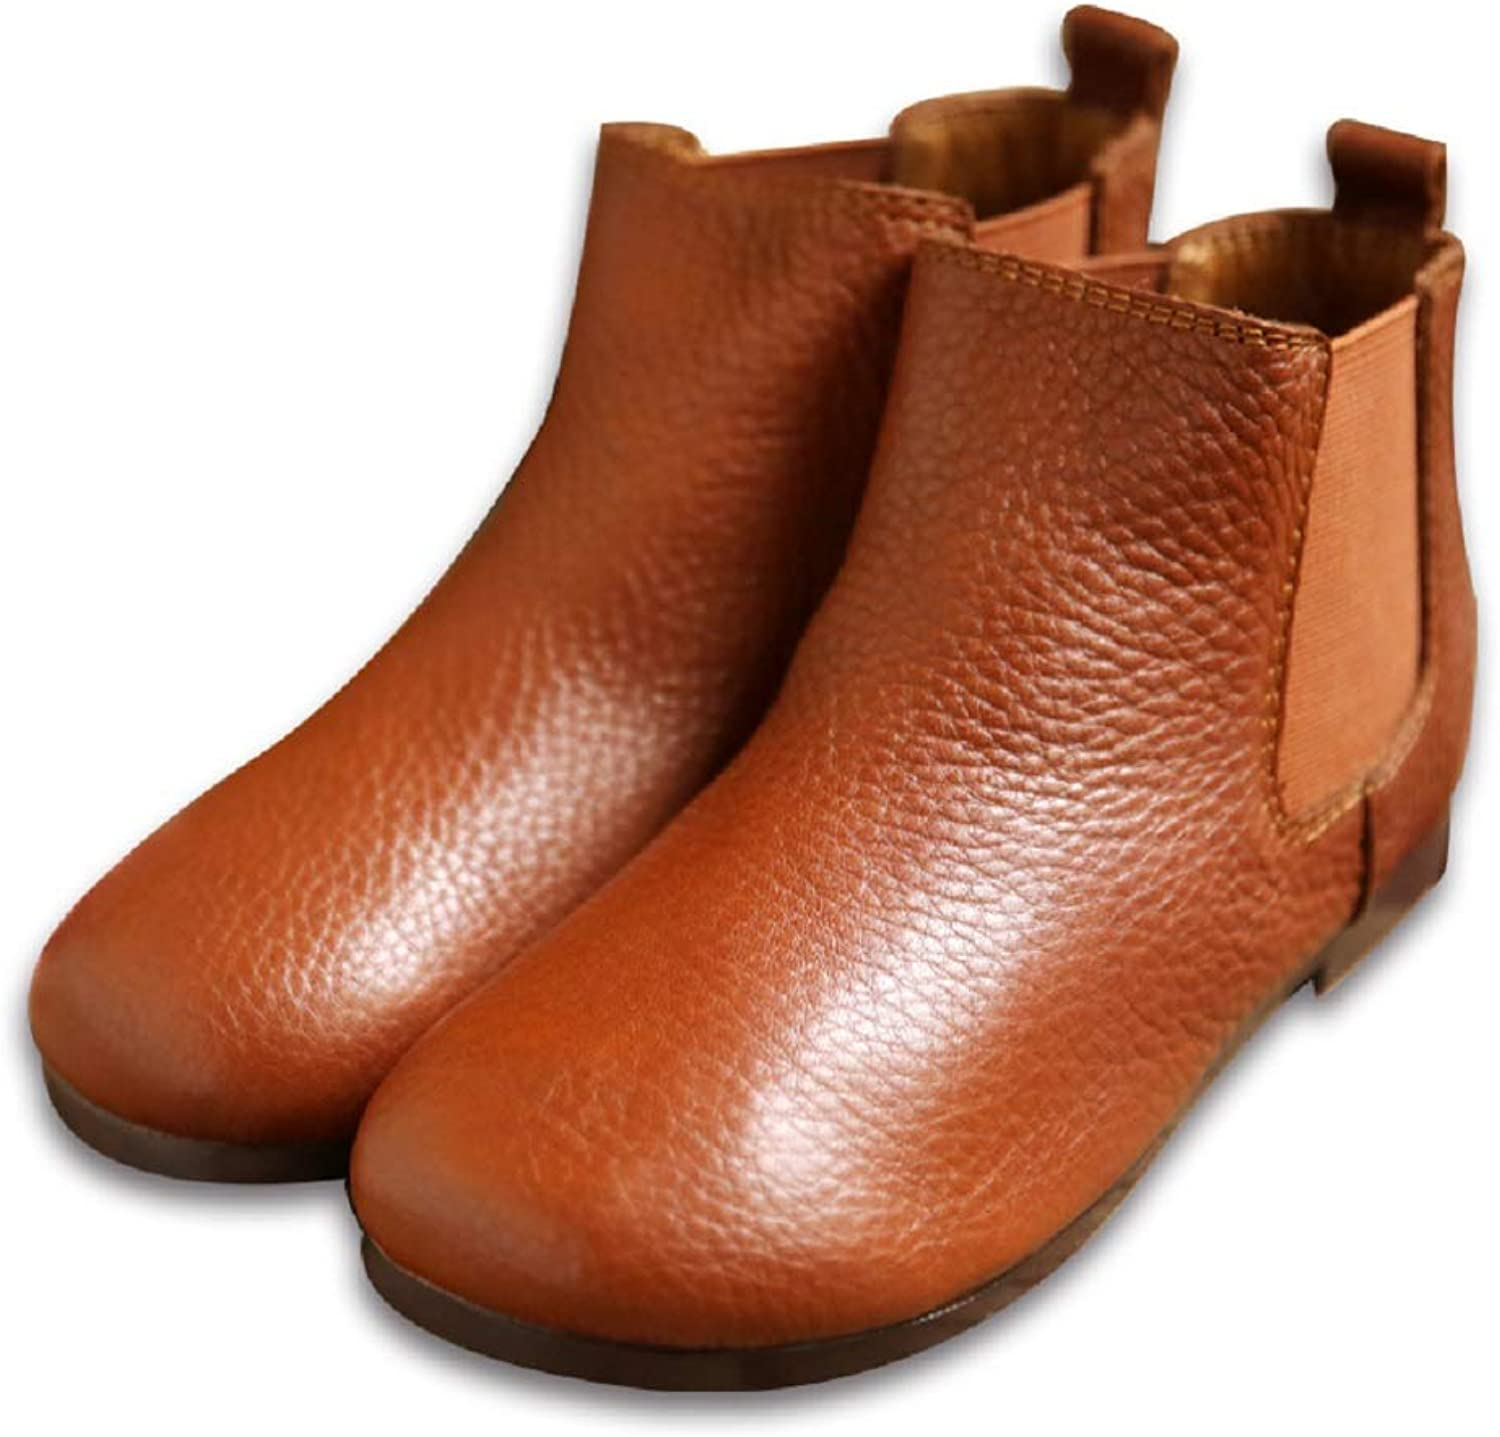 Women Elastic Boots Flat Leather Slip on Vintgae Ankle shoes (color   Brown, Size   CA 7)